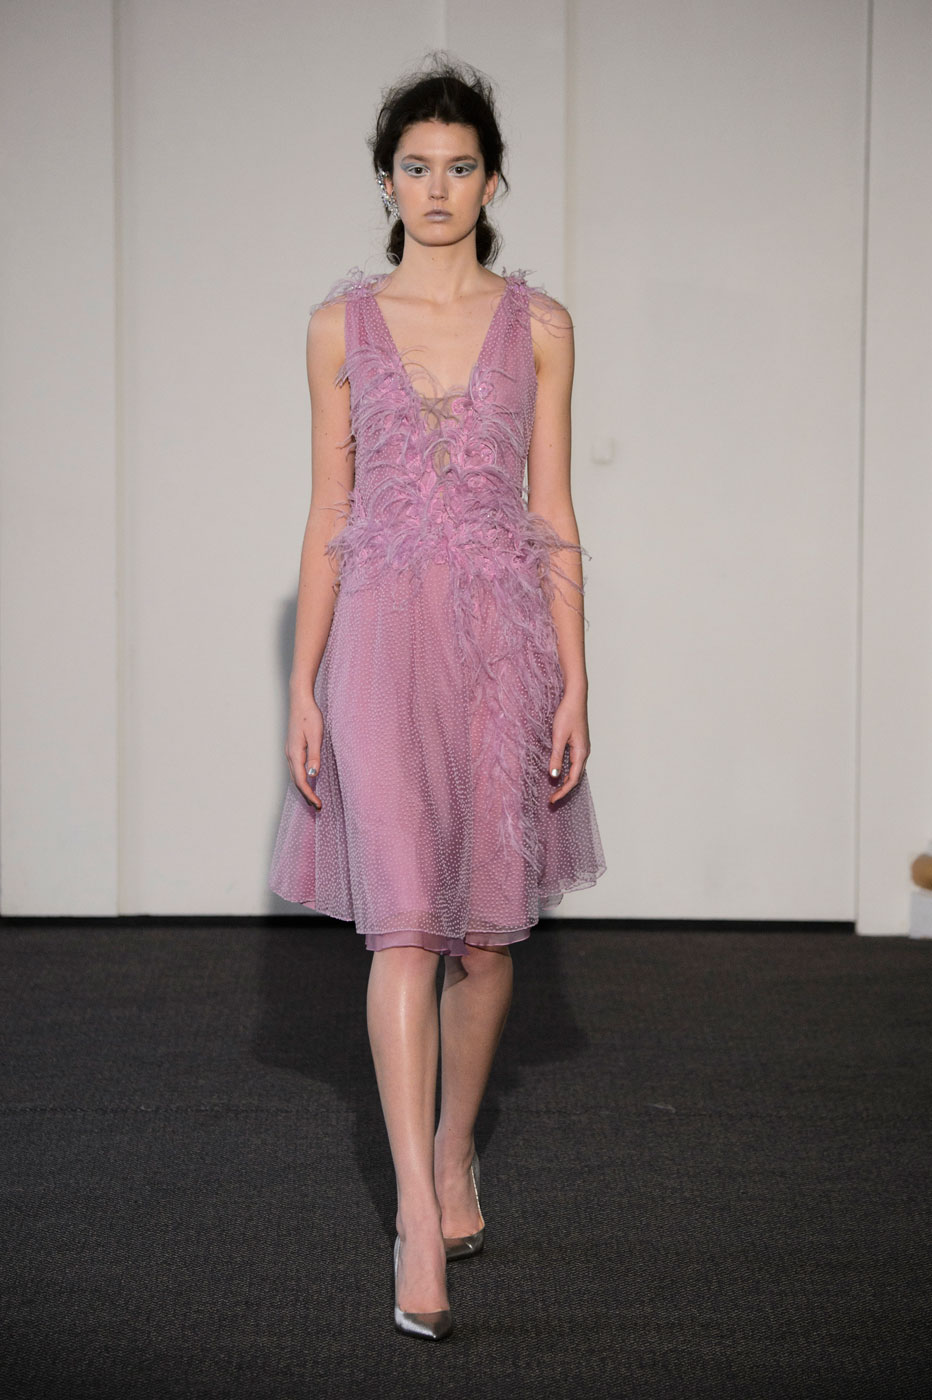 Busardi-fashion-runway-show-haute-couture-paris-spring-2015-the-impression-34